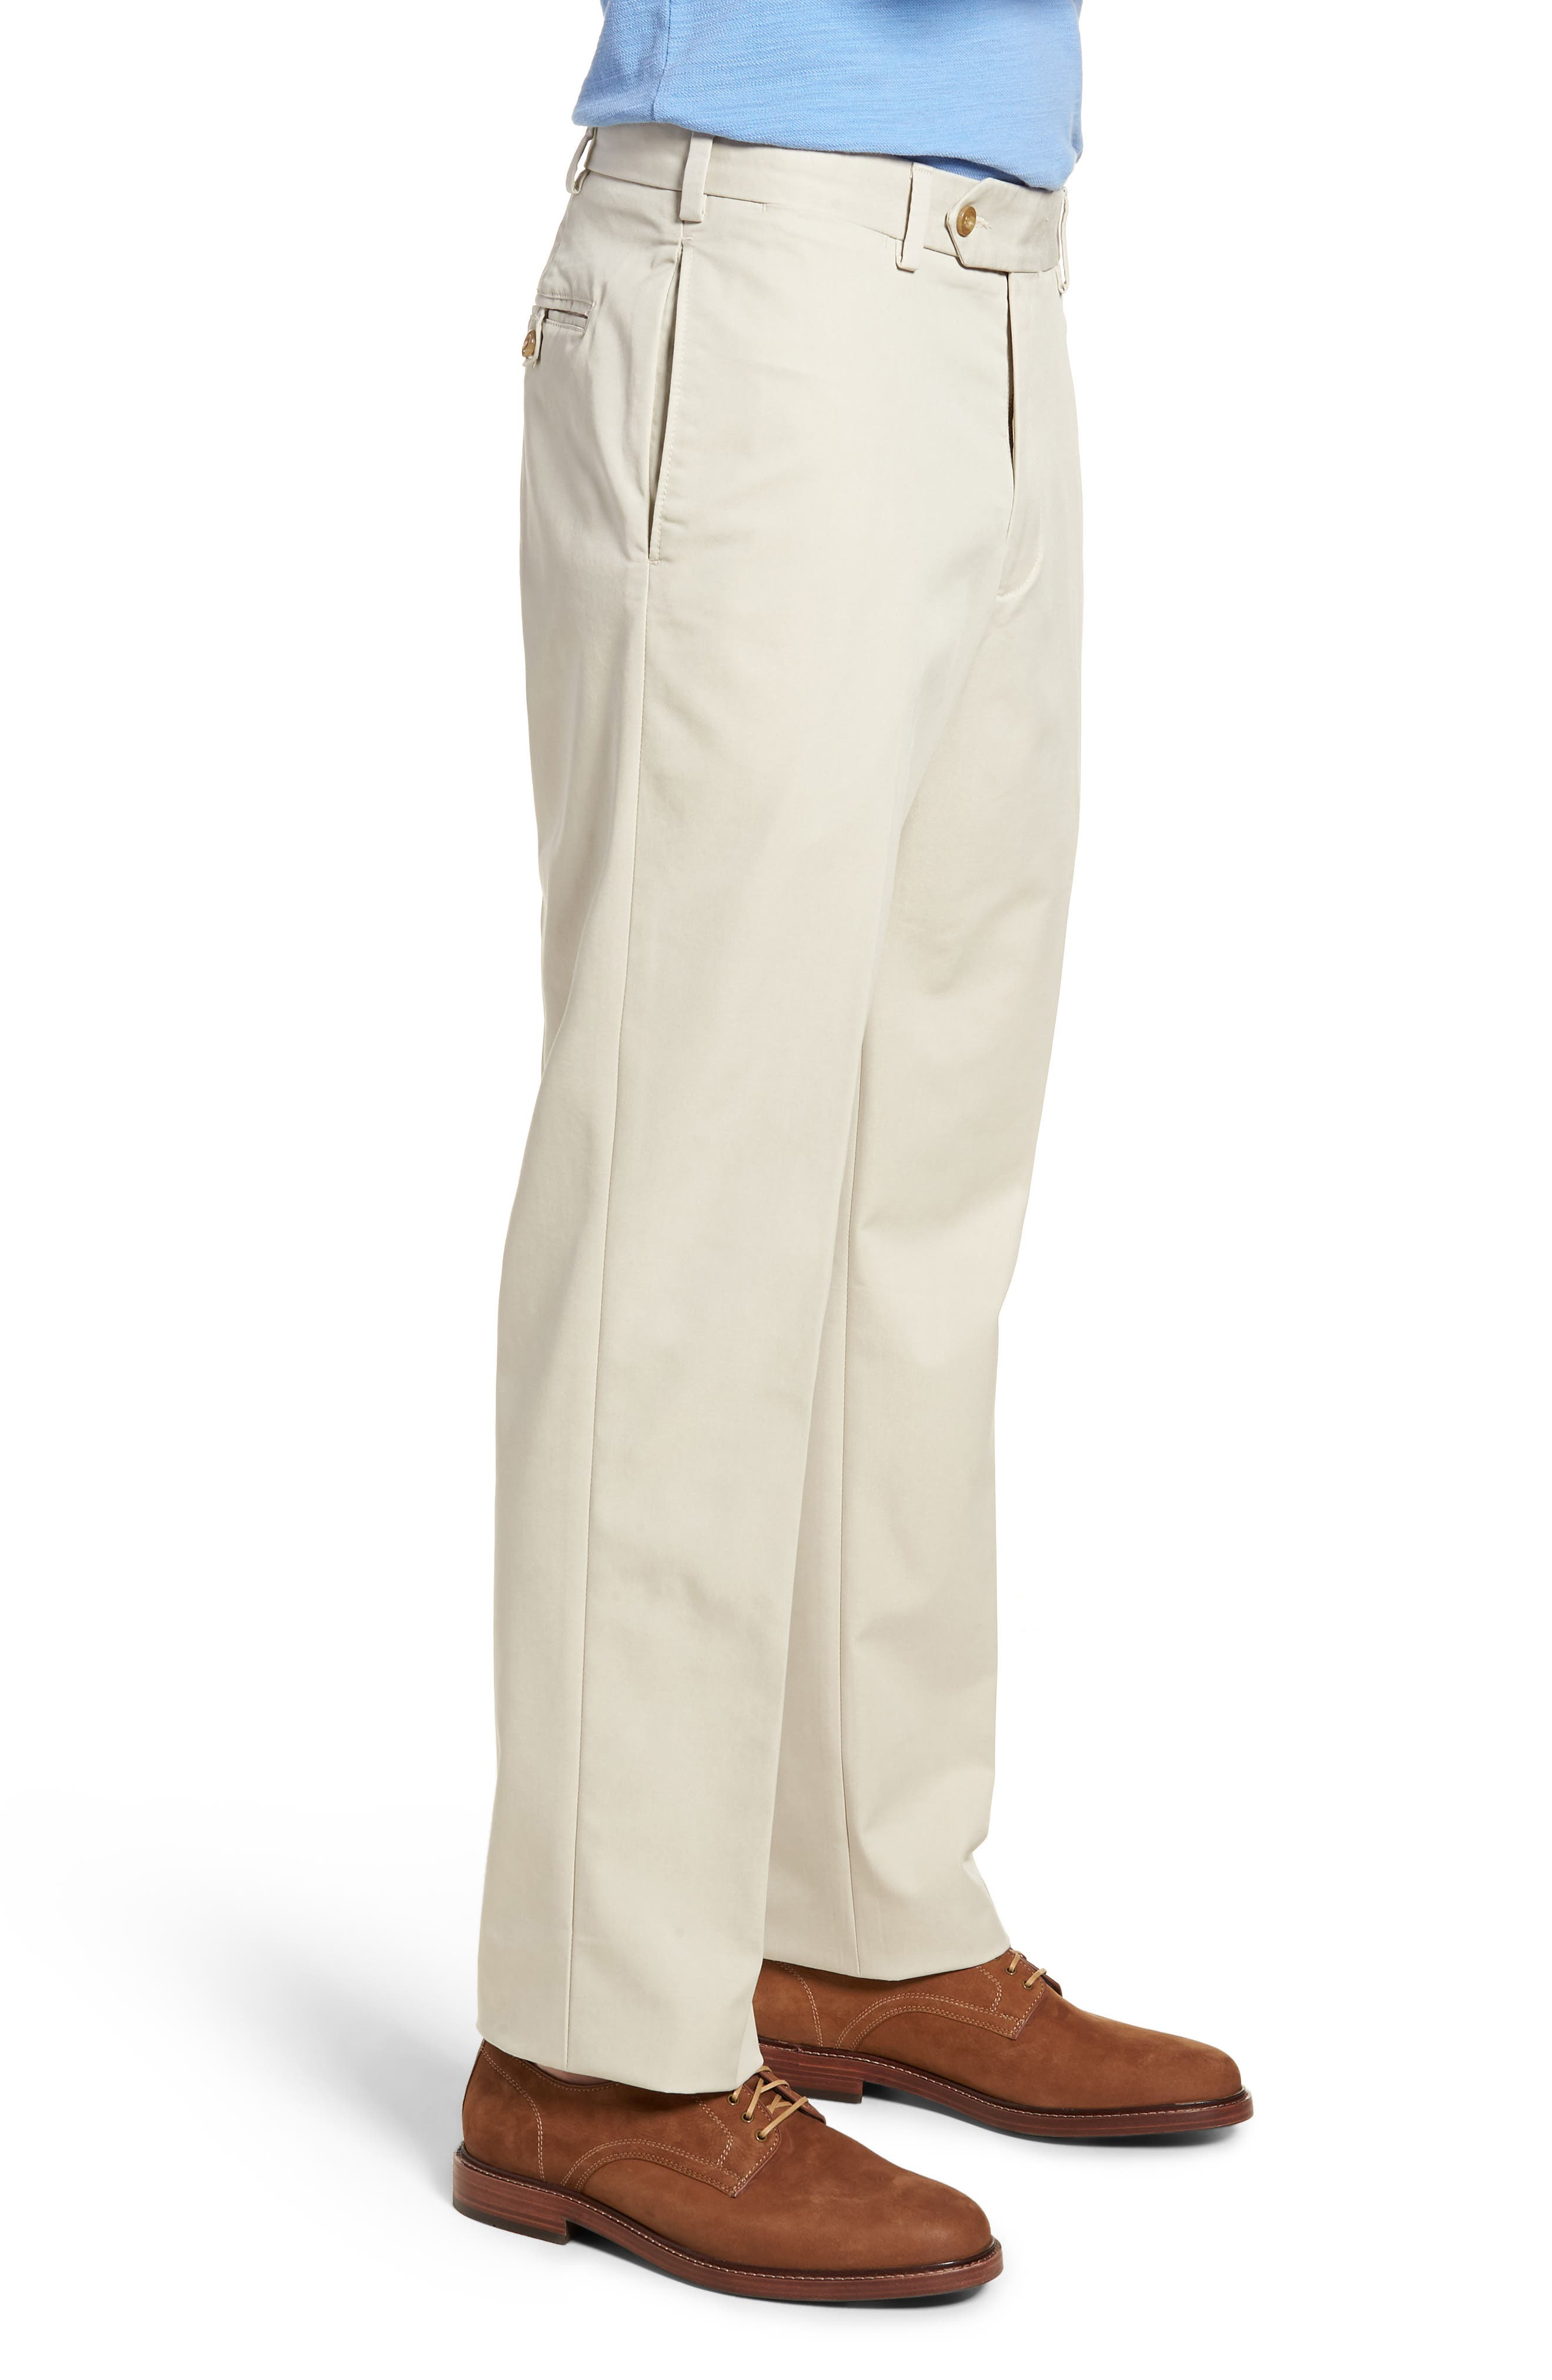 M2 Classic Fit Flat Front Travel Twill Pants,                             Alternate thumbnail 3, color,                             Cement